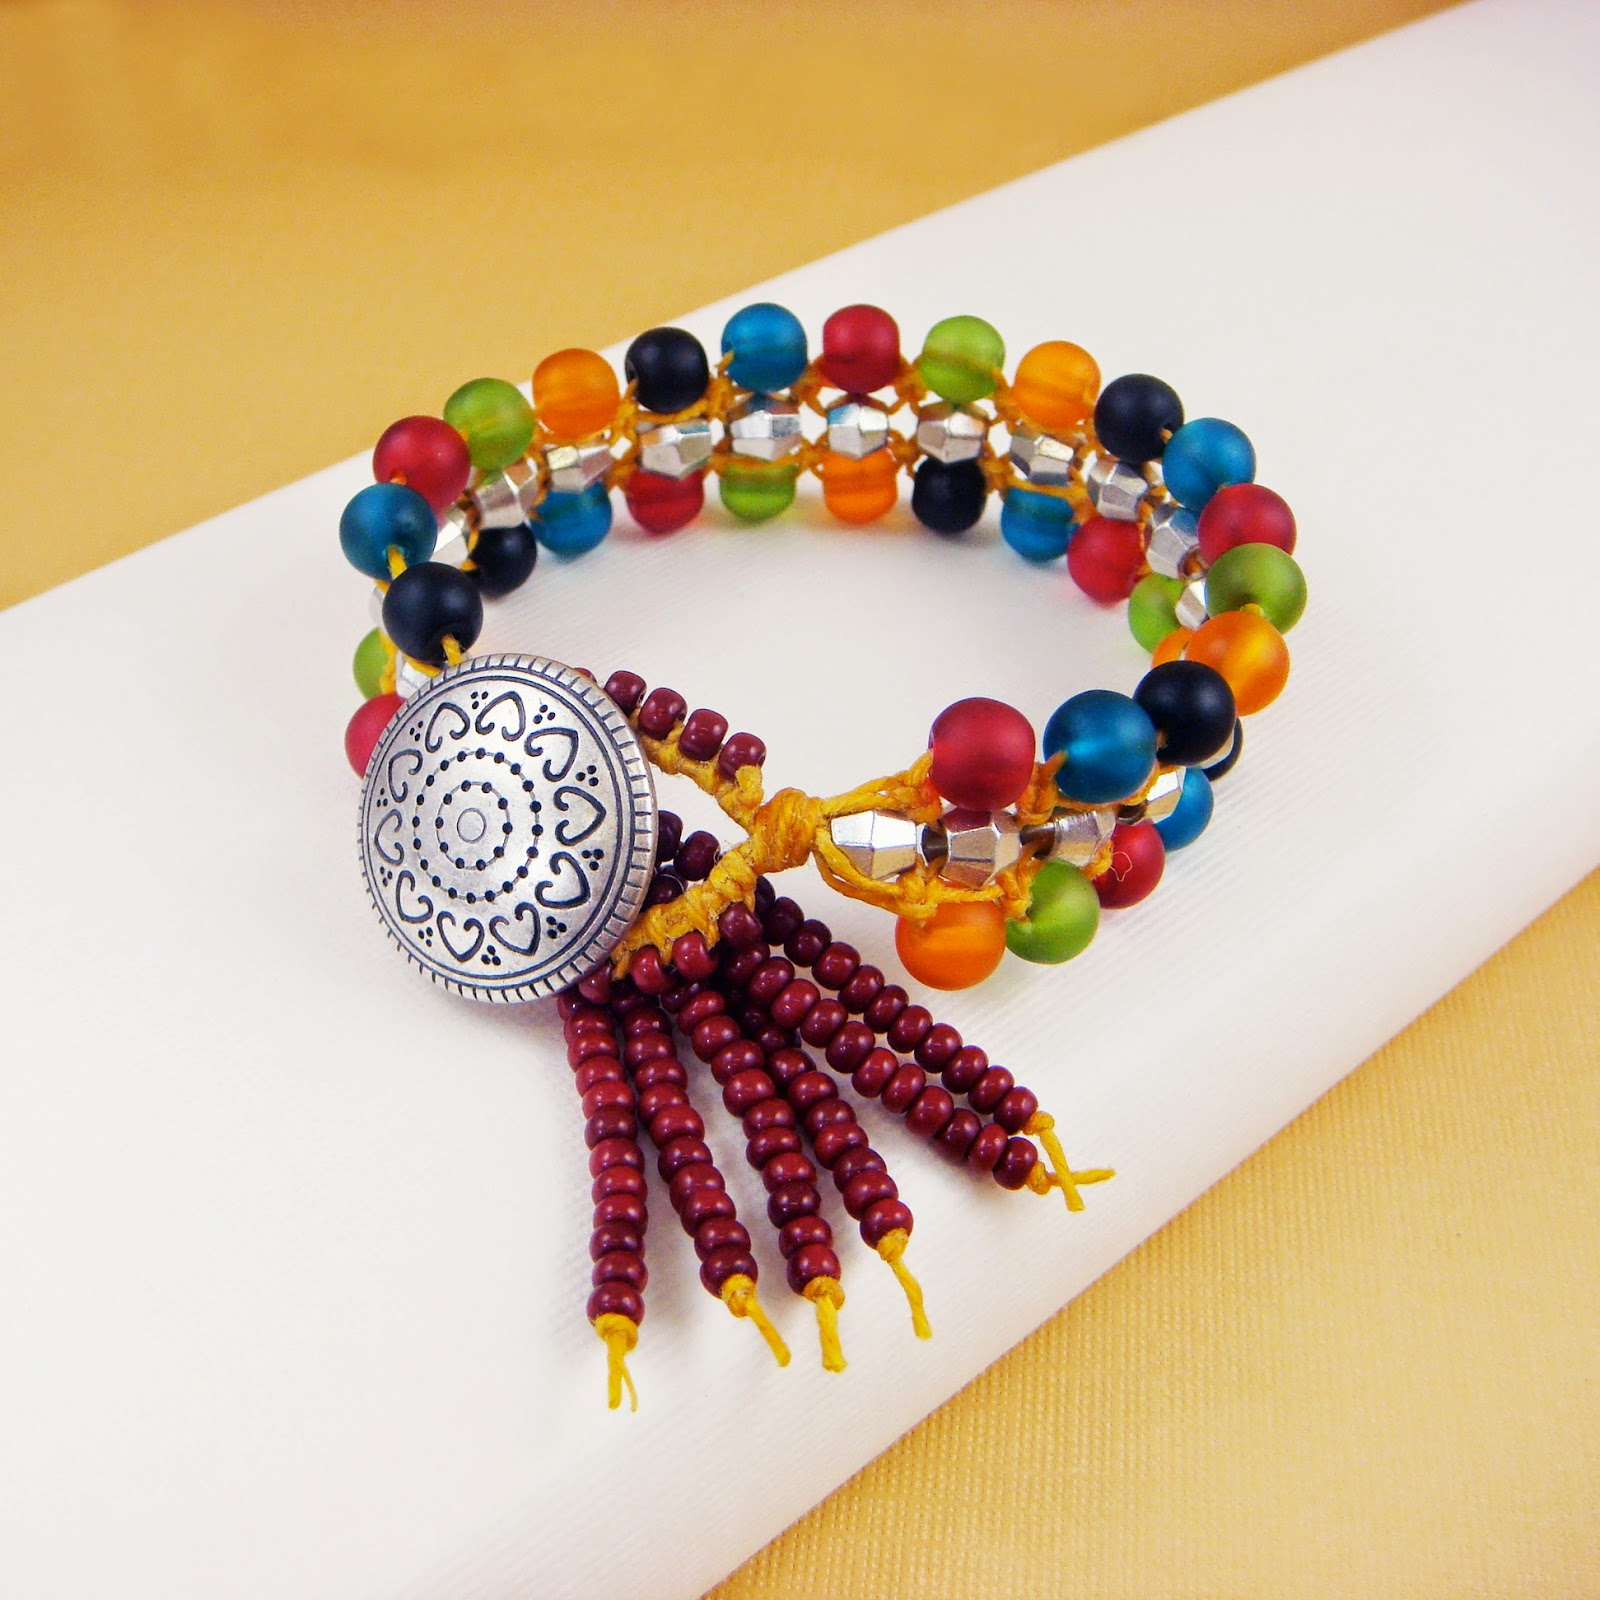 http://www.bostonbeadcompany.com/collections/project-classes/products/spice-trader-macrame-bracelet-by-erin-siegel